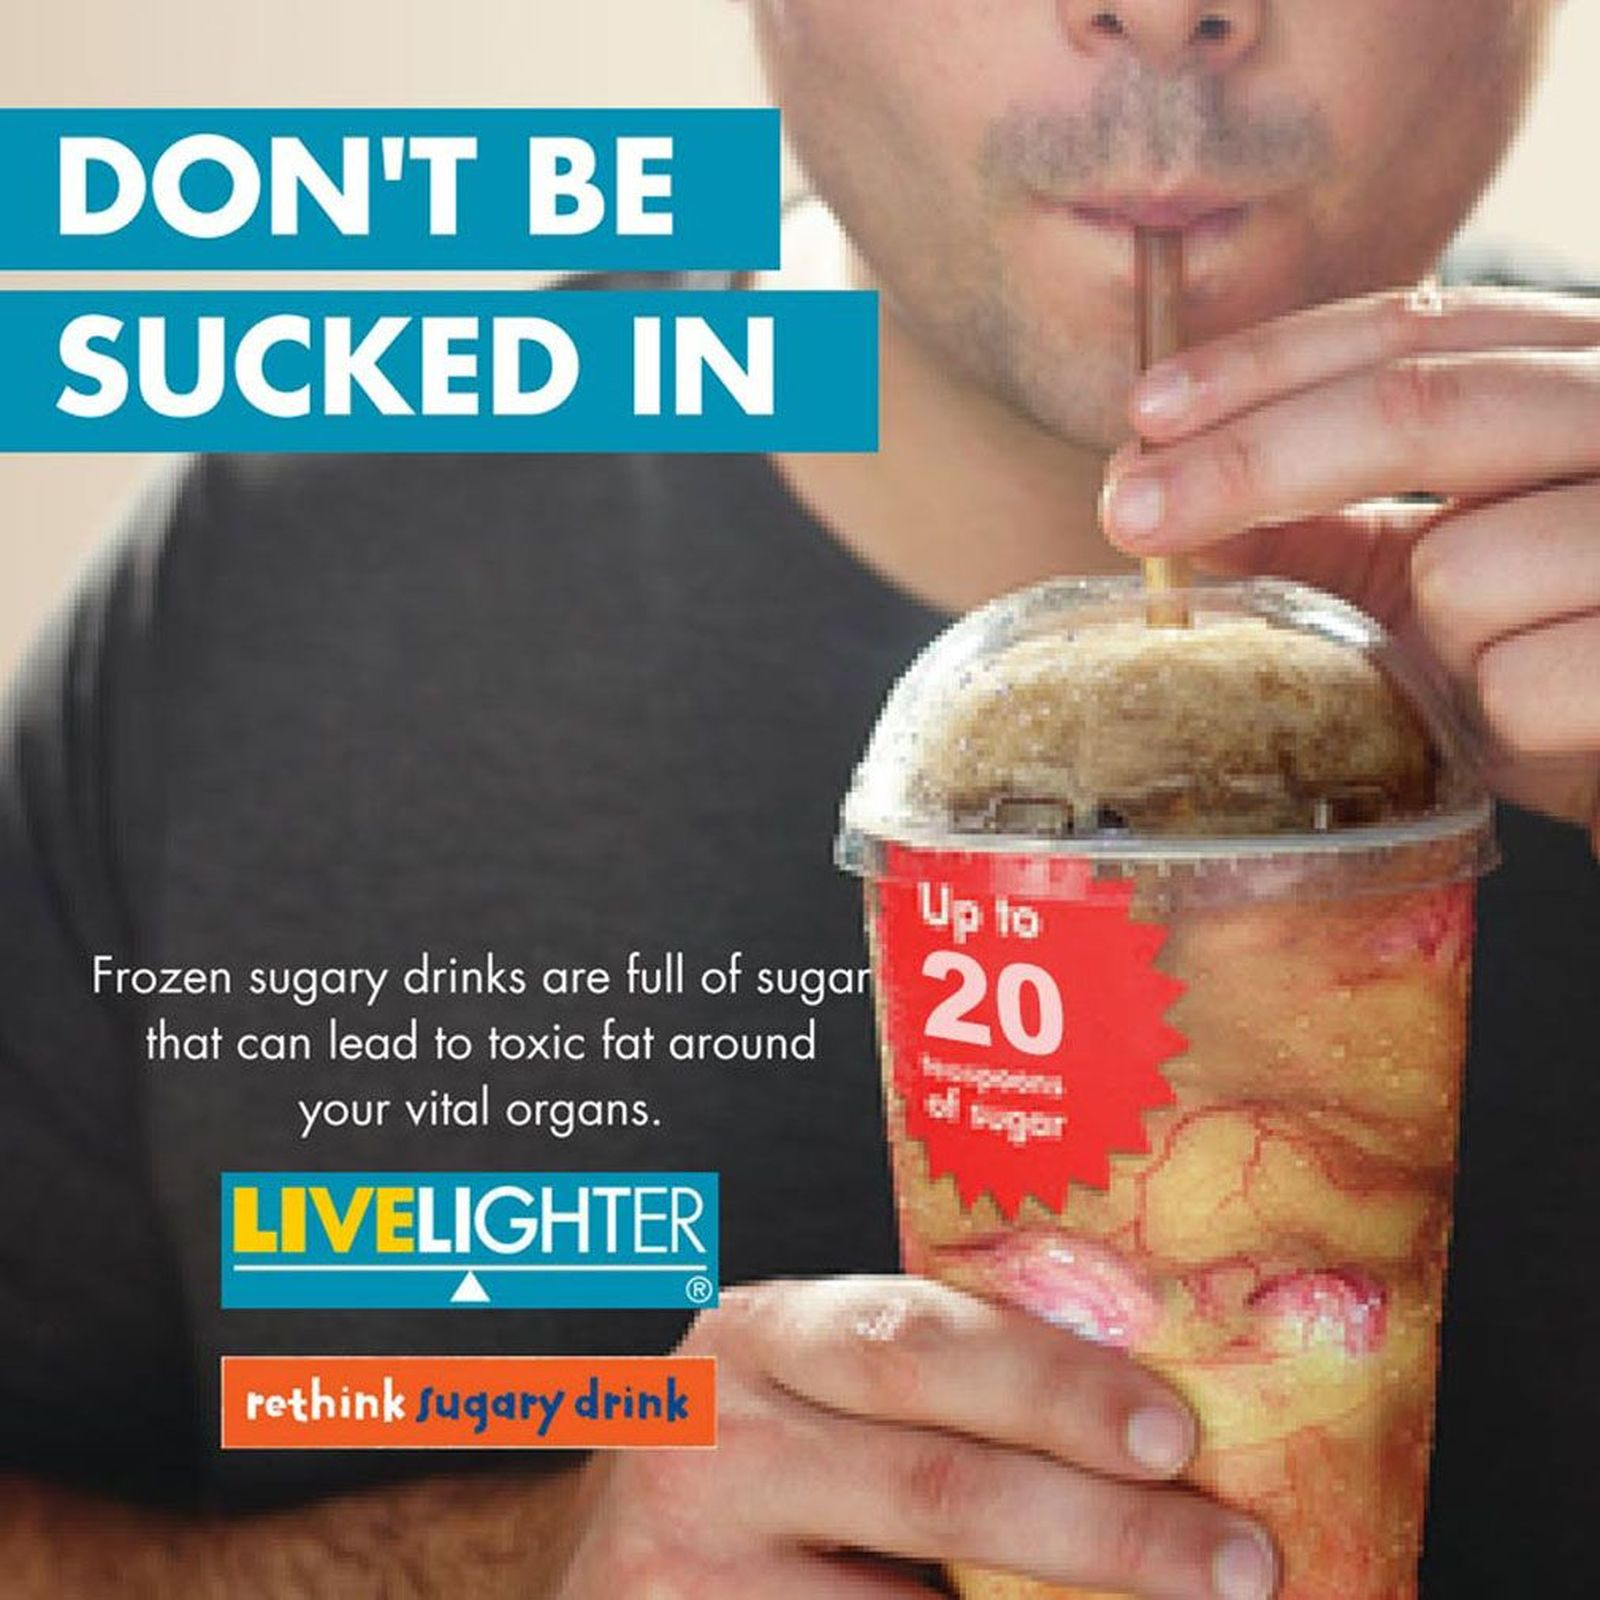 live lighter campaign slurpee ingredients